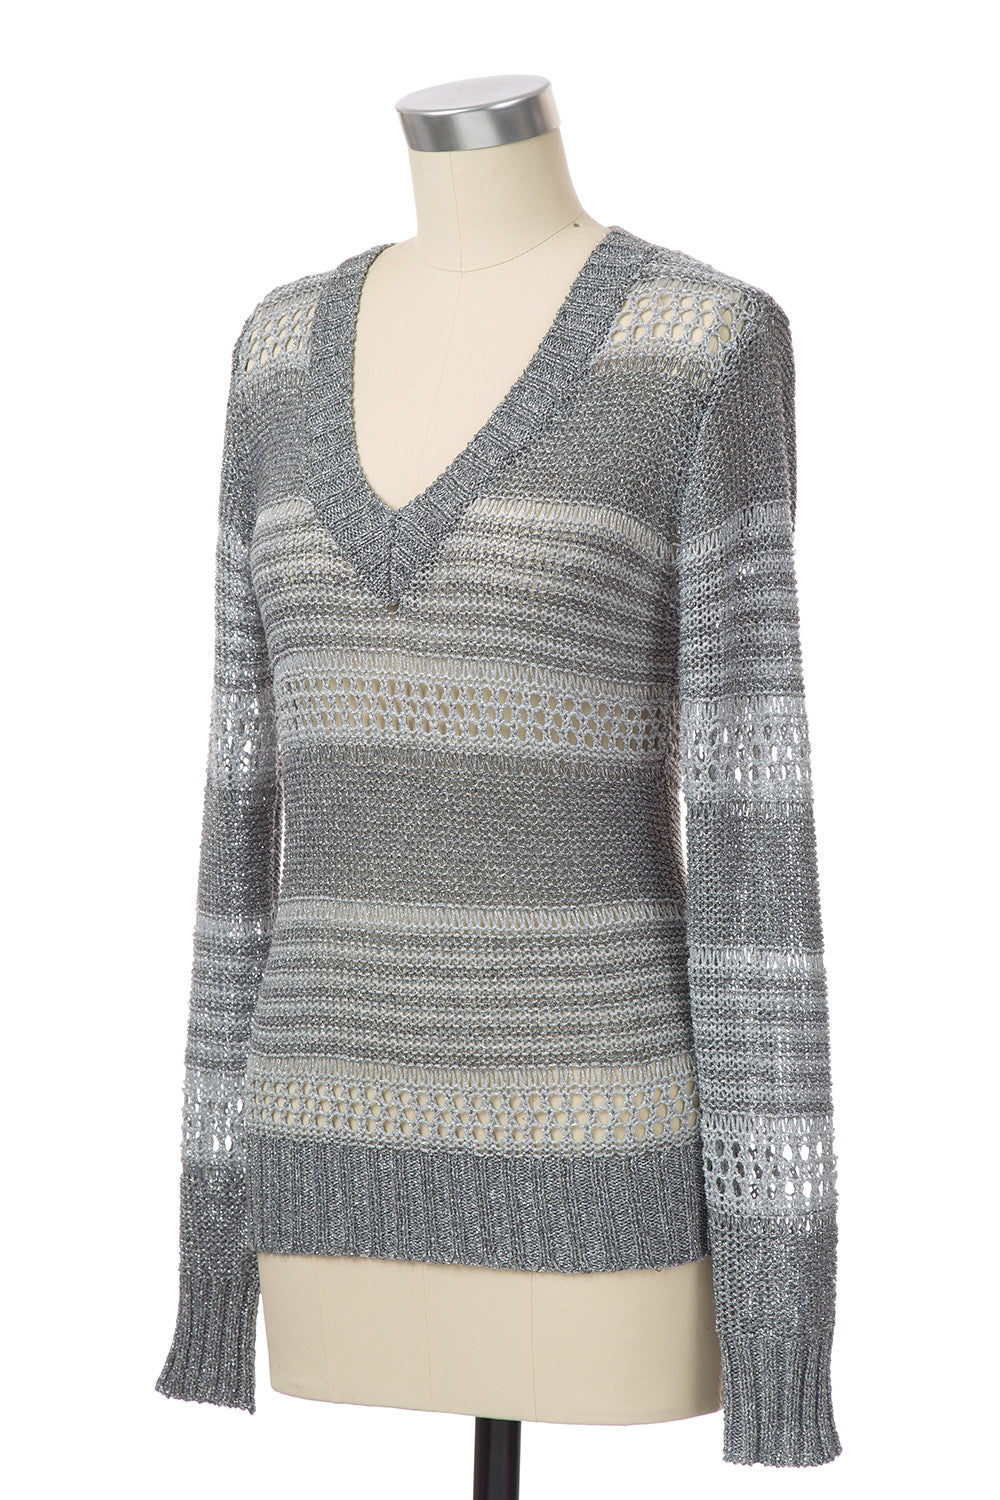 Type 2 Subtle Shimmer Sweater